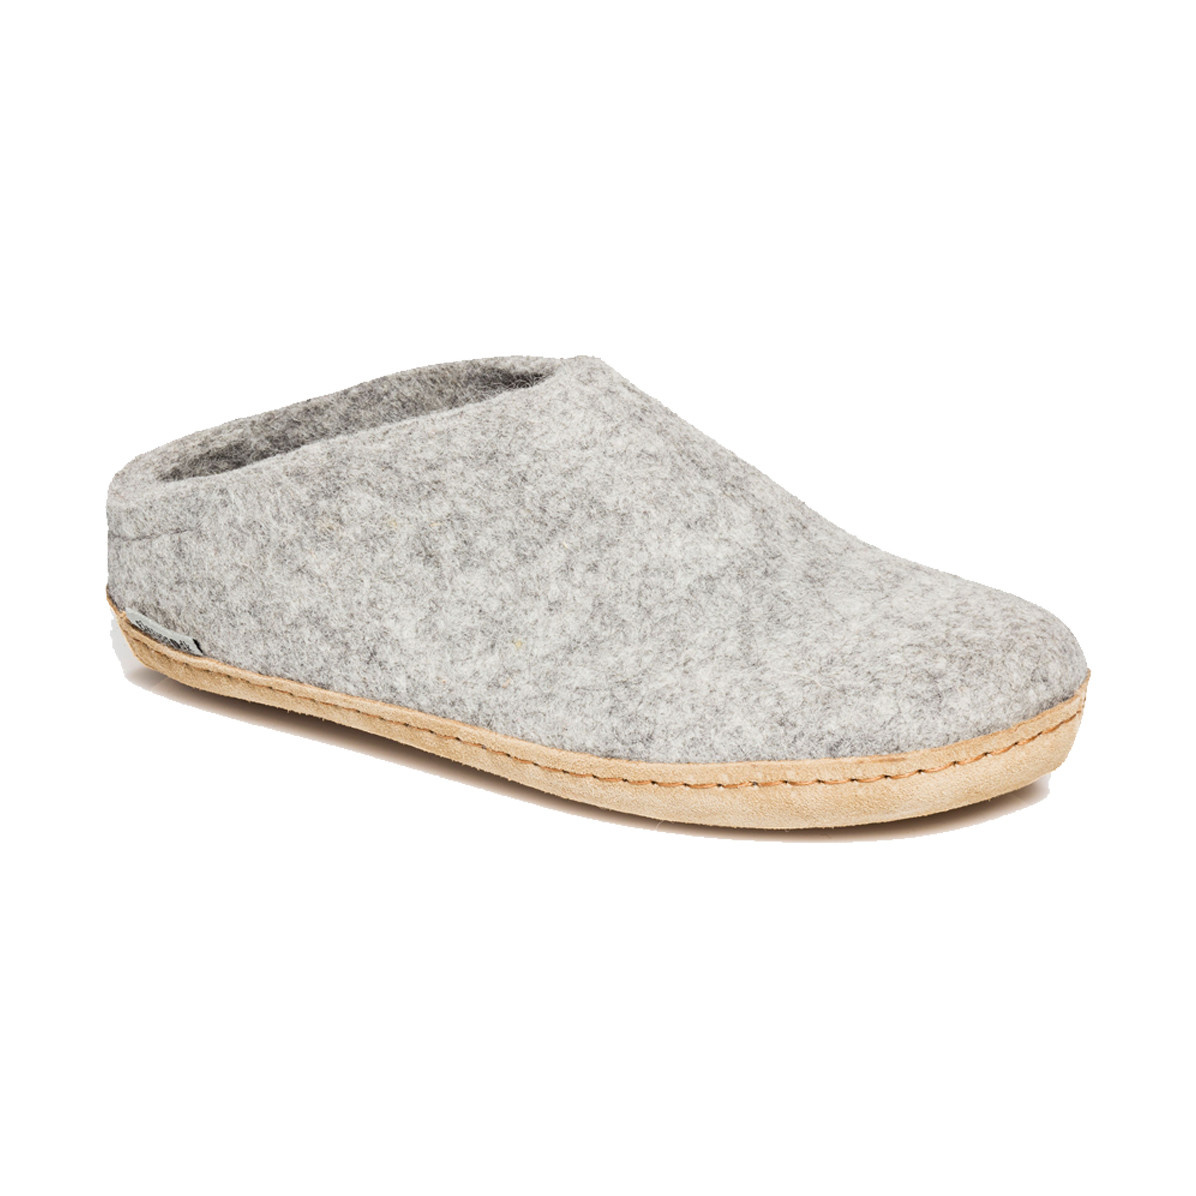 Glerups Glerups The Slipper Leather Sole Grey